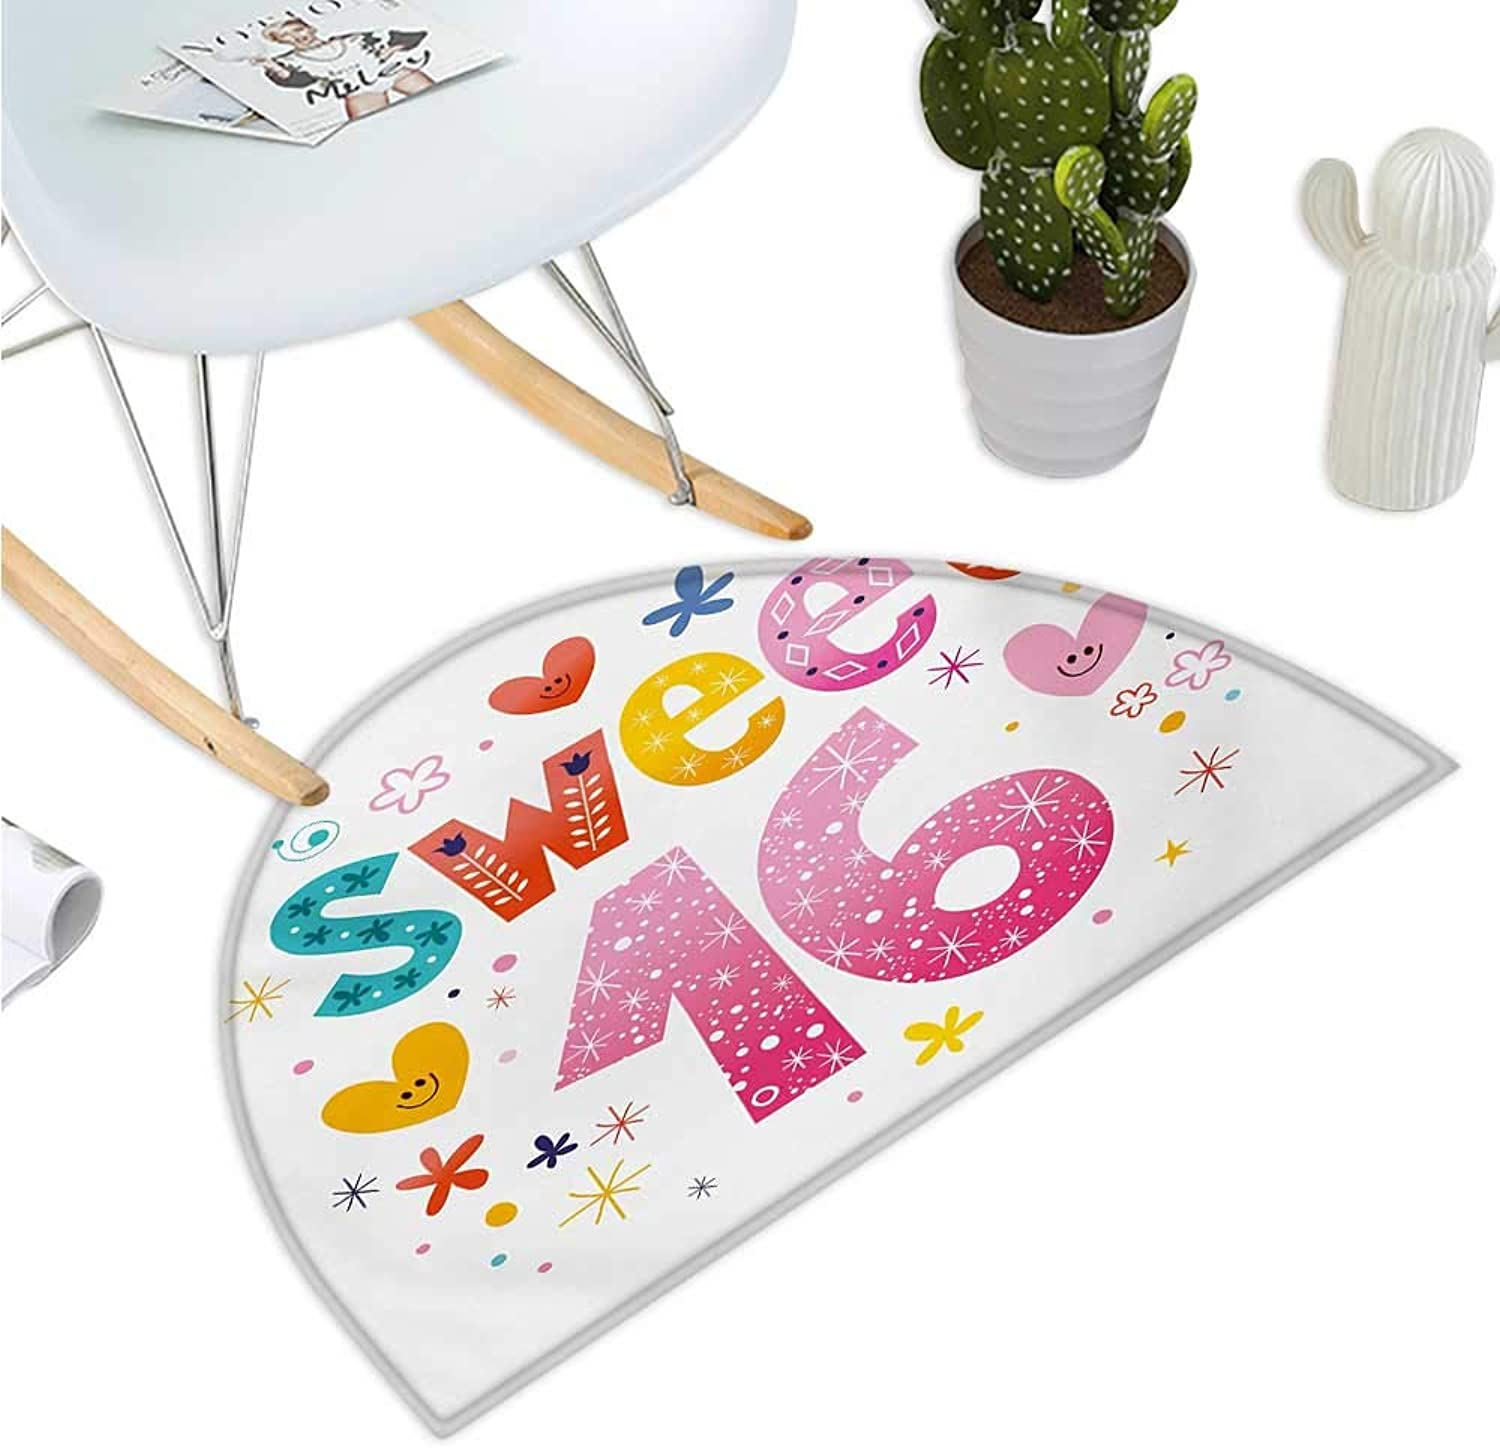 16th Birthday Semicircular Cushion Cute Sweet Sixteen Hearts Stars and Flowers Unique Girls Joyous Fun Design Entry Door Mat H 43.3  xD 64.9  Multicolor